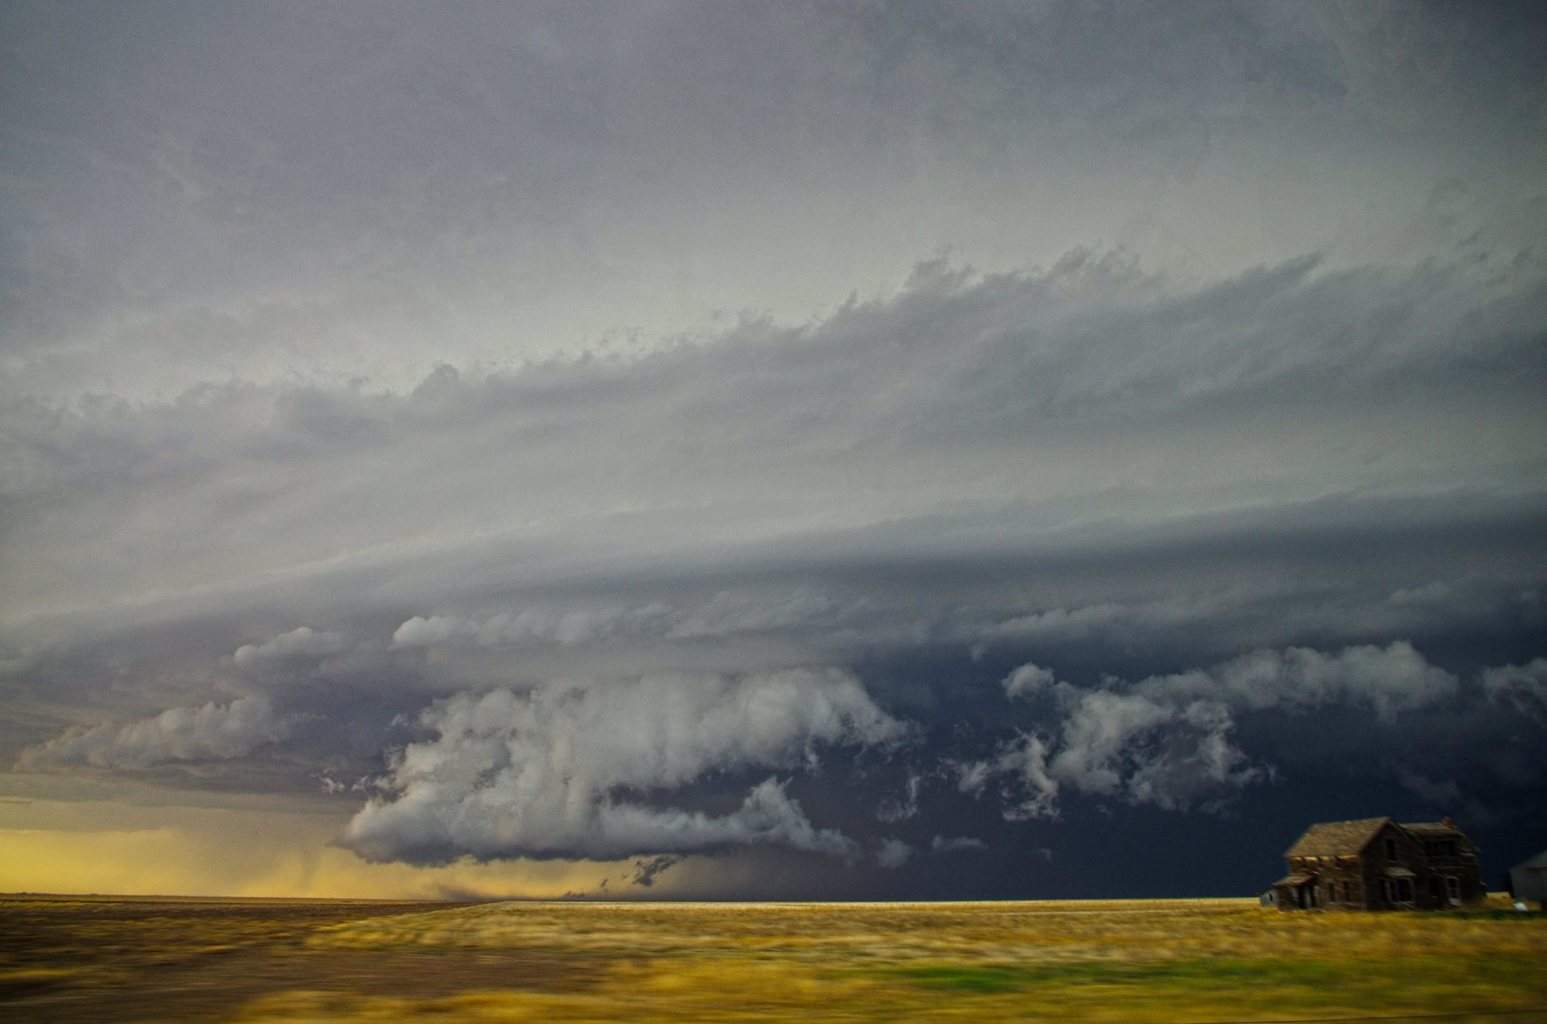 A supercell that had some amazing structure, about to overtake a house in southwest Kansas, This supercell was dropping baseball size hail at the time of the photo. This part of Kansas was also in an exceptional drought at the time. Taken:06/01/2014